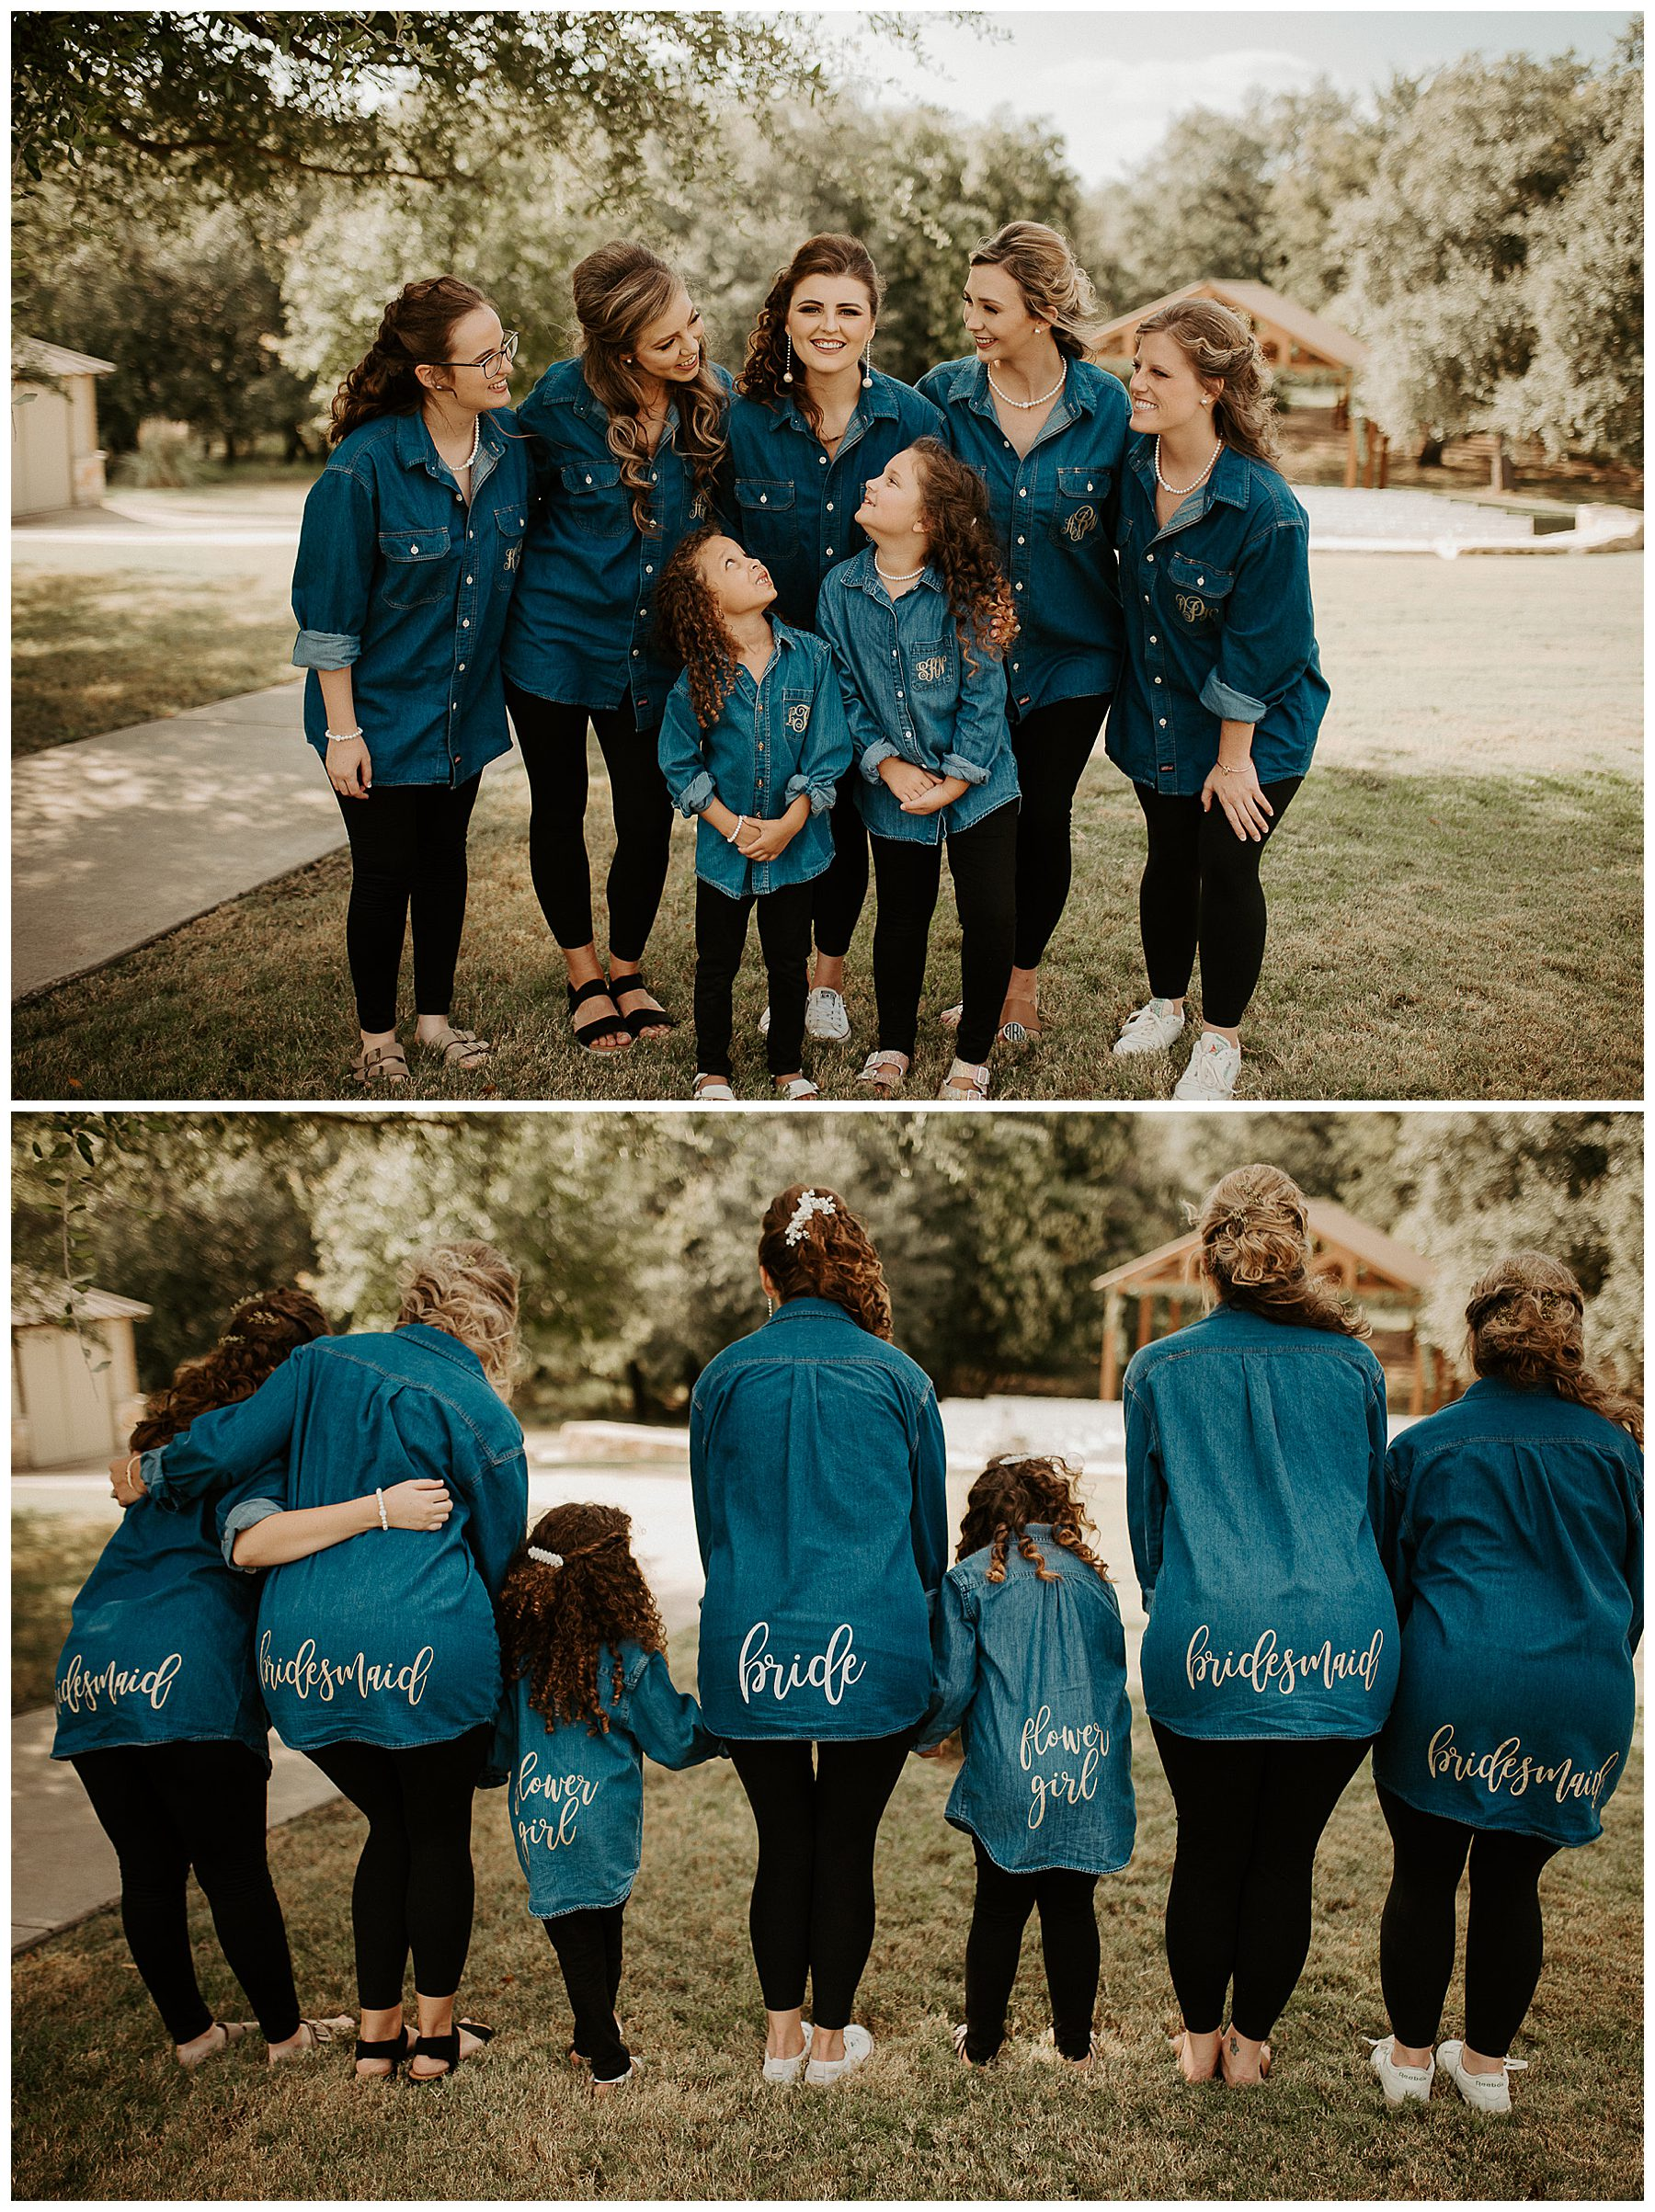 diy wedding party getting ready oversized shirts cricut personalized monogrammed